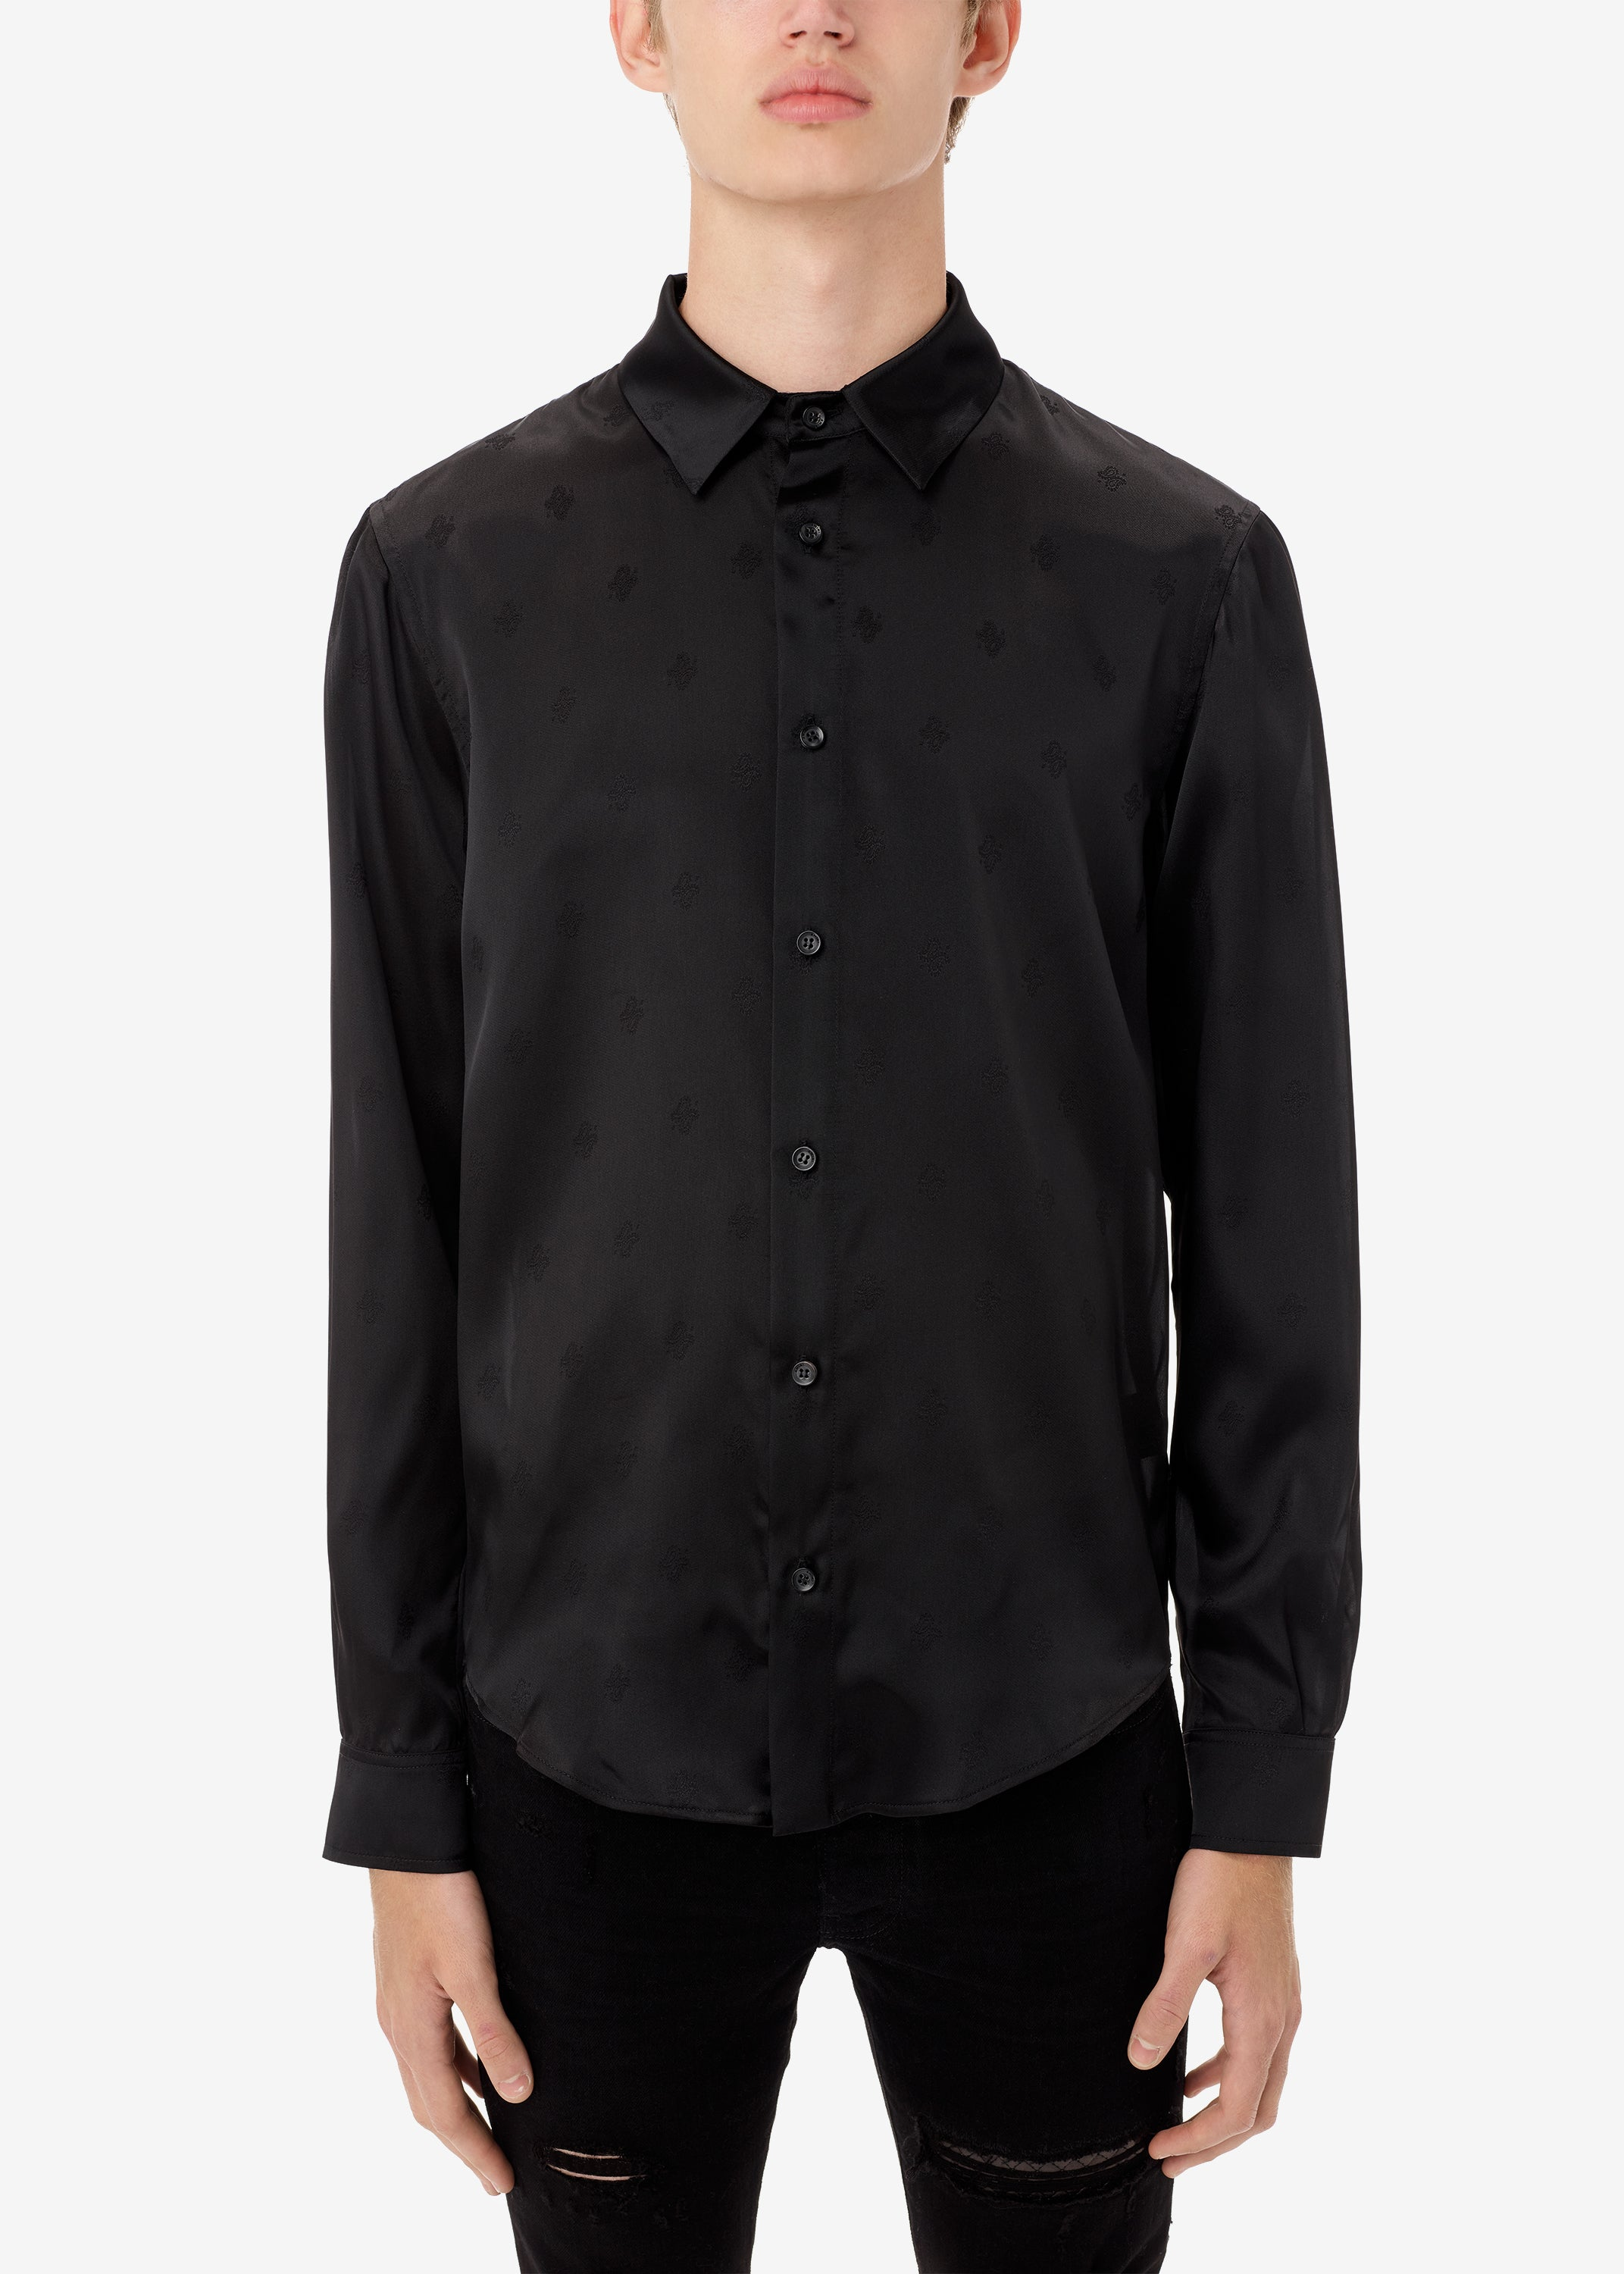 exclusive-micro-paisley-shirt-black-image-1